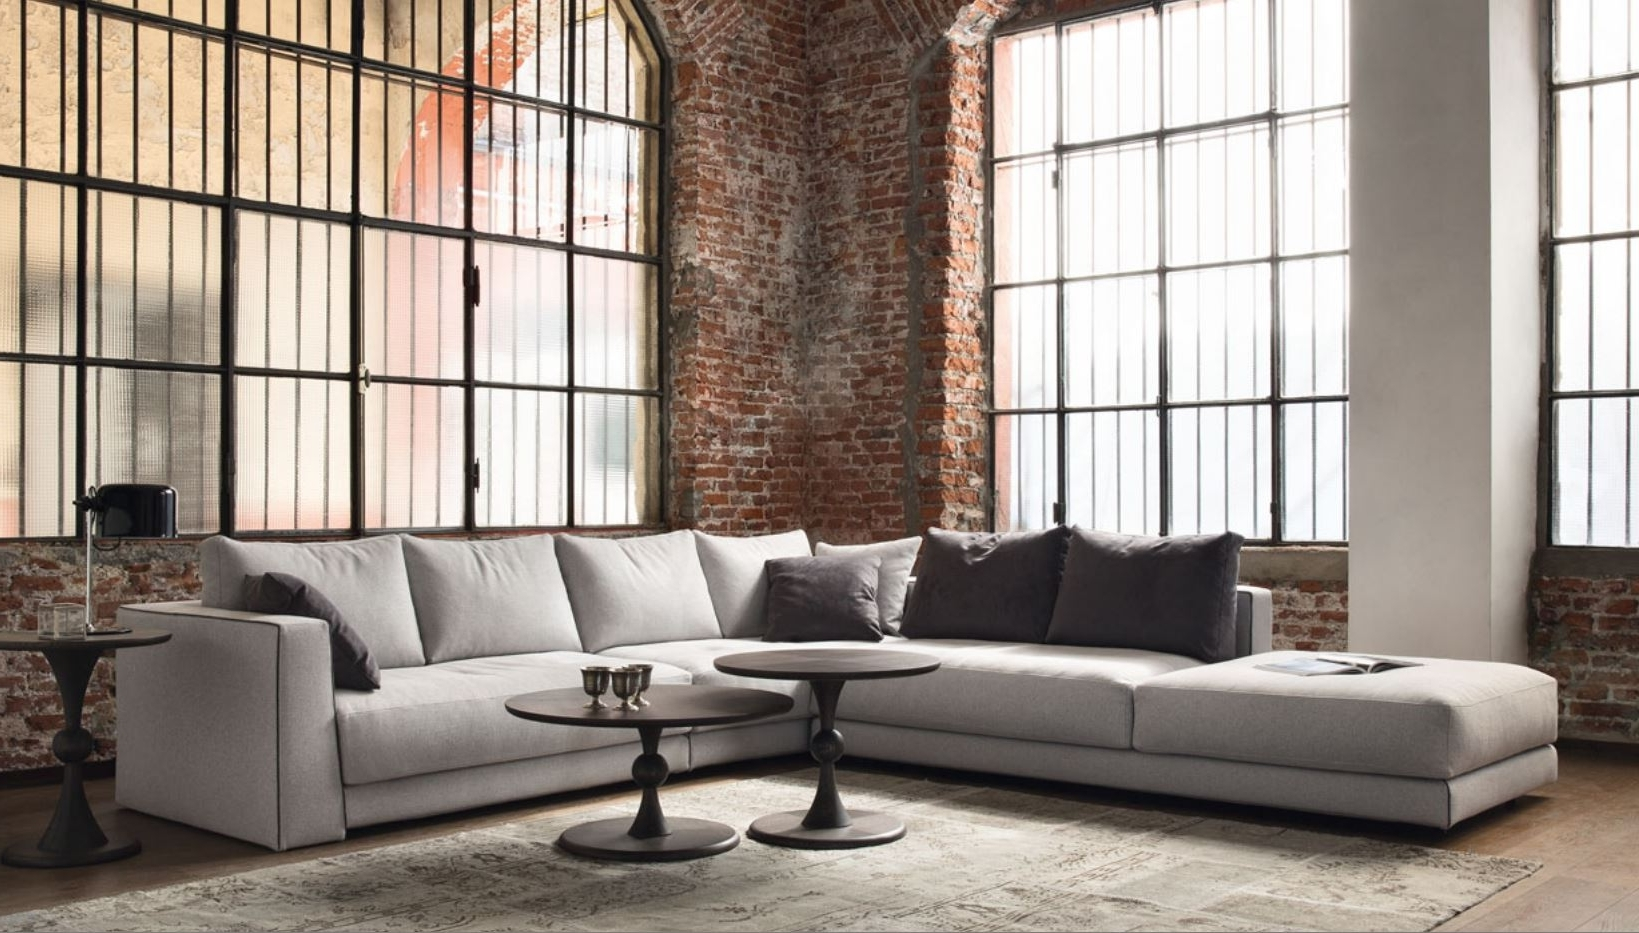 Contemporary Sectional Sofas Pertaining To Most Recently Released Contemporary Sectional Couch Best Modern Sectional Sofa Grey (View 11 of 15)